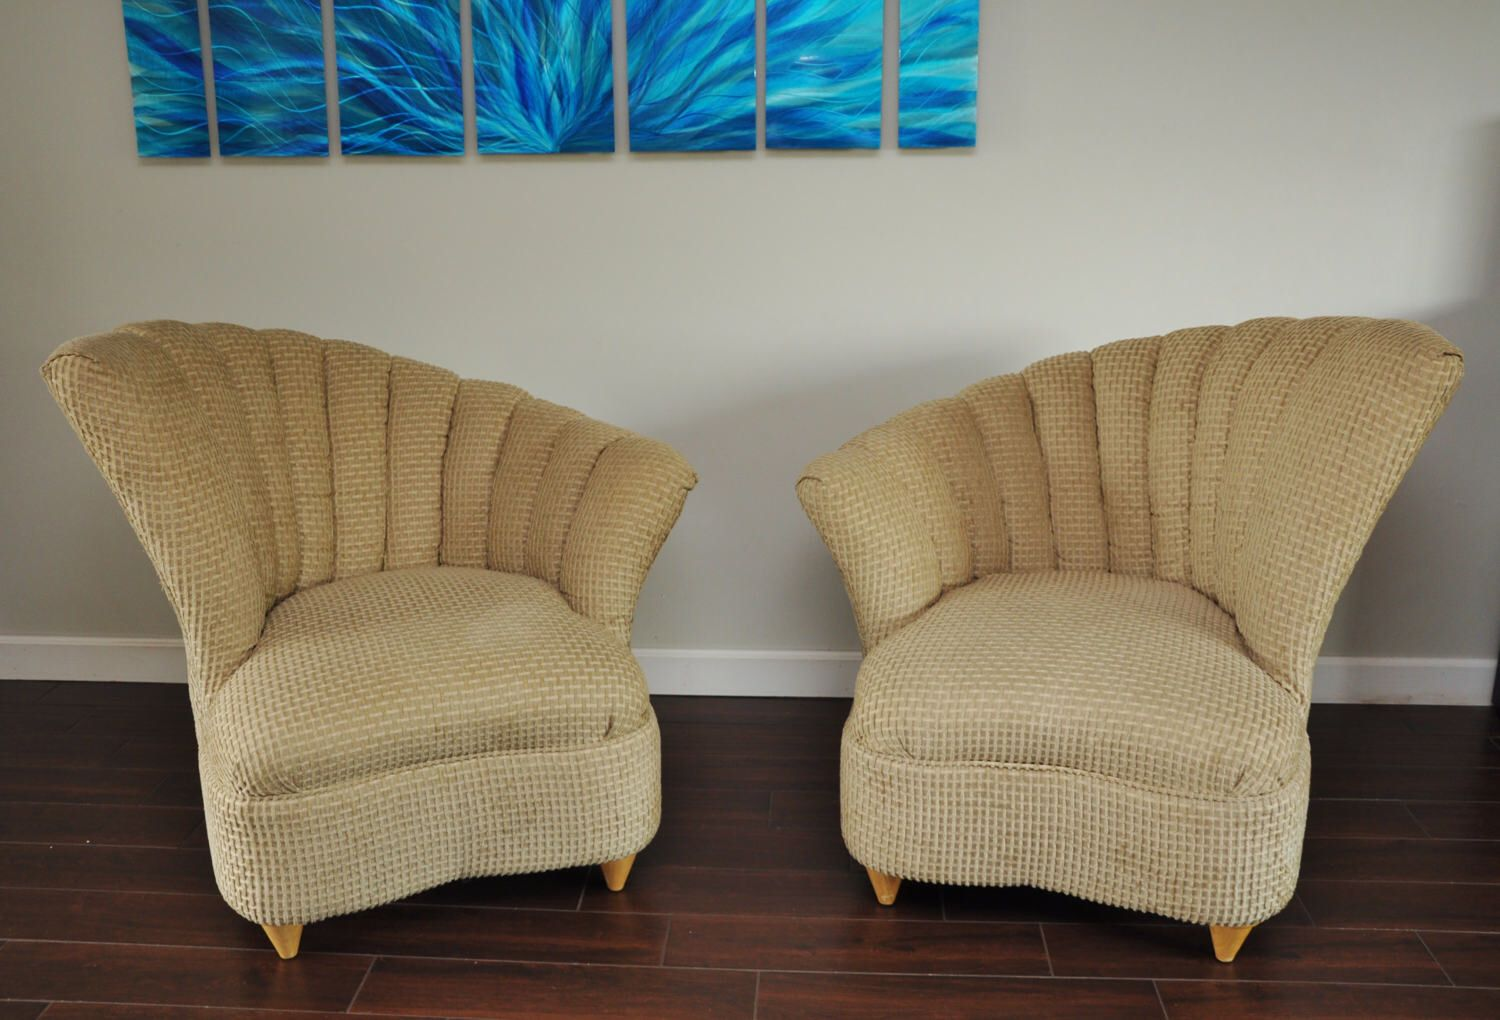 Pair Asymmetric Art Deco Style Channel Back Shell Barrel Chairs Mirrored- Nice! by FunFloridaFinds on Etsy https://www.etsy.com/listing/506779128/pair-asymmetric-art-deco-style-channel